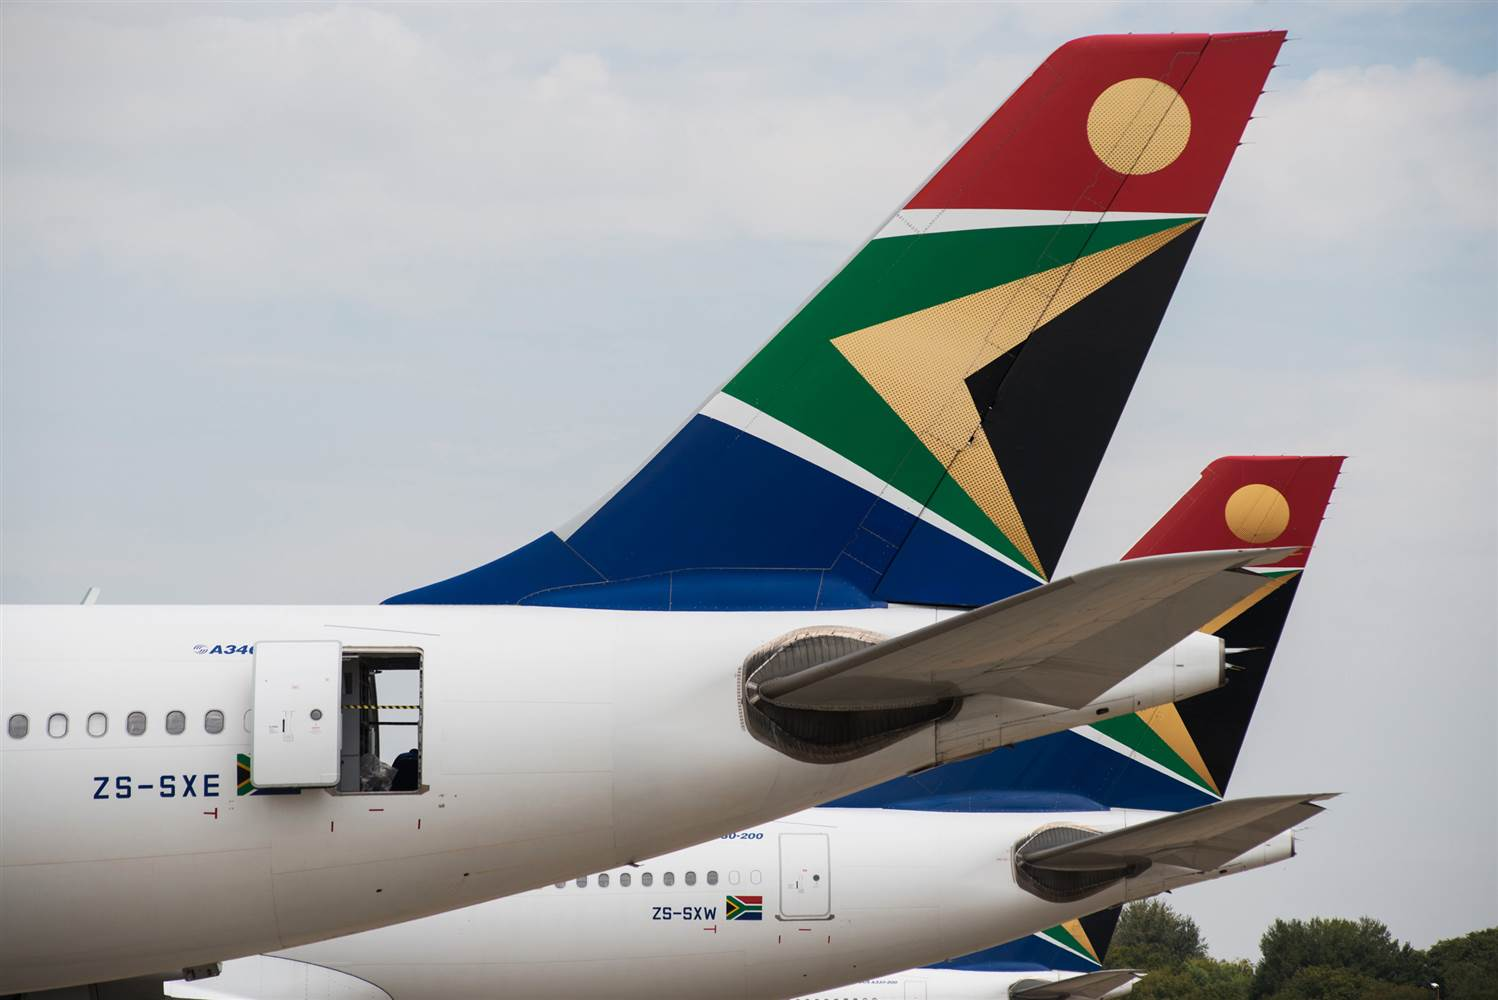 South African Airways advises on Zimbabwean operations